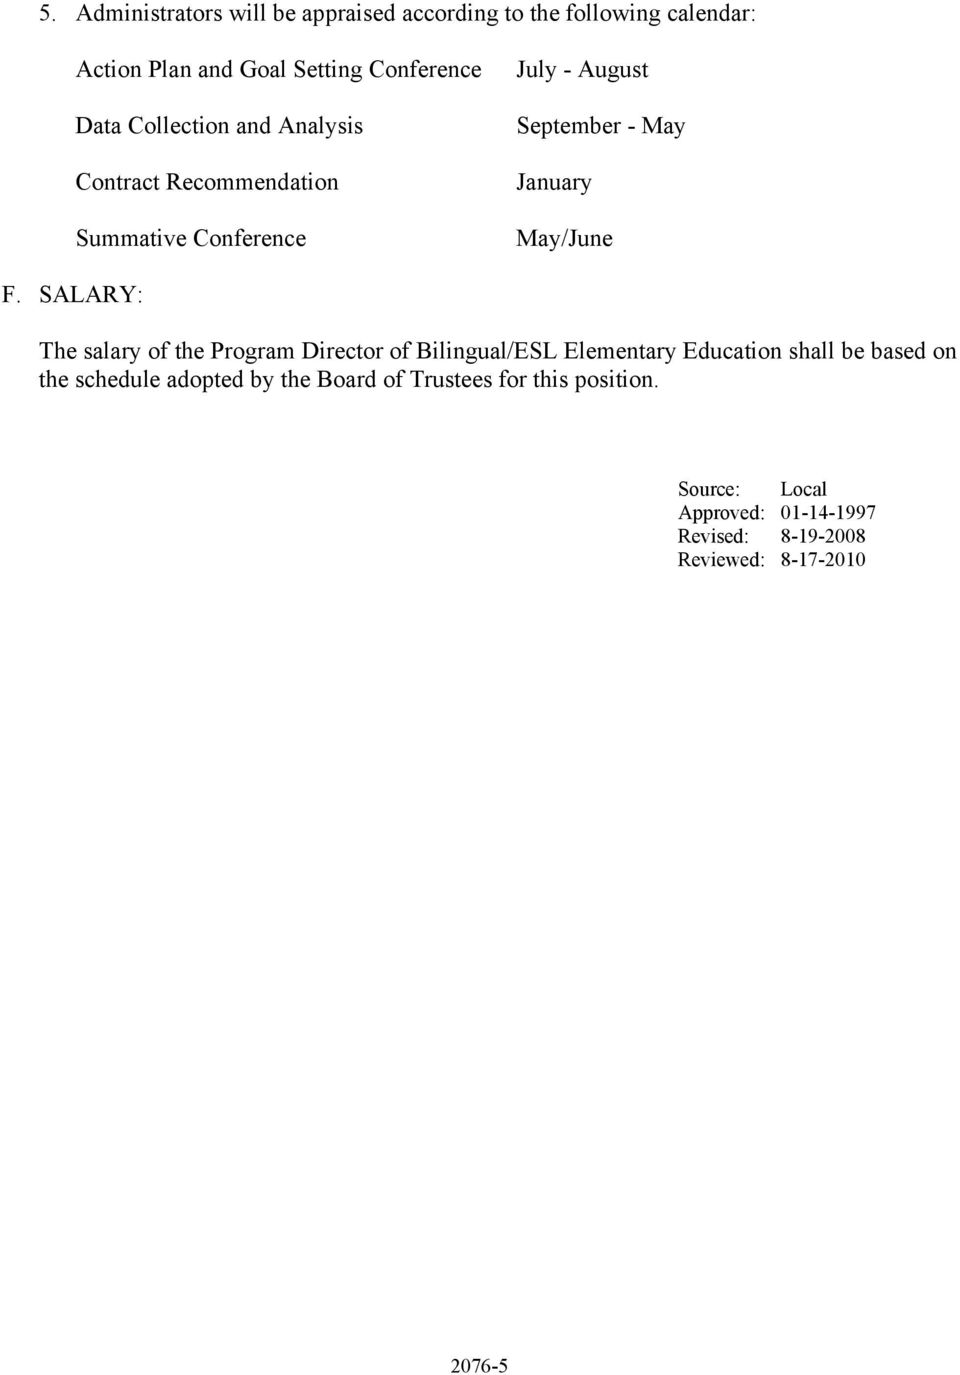 SALARY: The salary of the Program Director of Bilingual/ESL Elementary Education shall be based on the schedule adopted